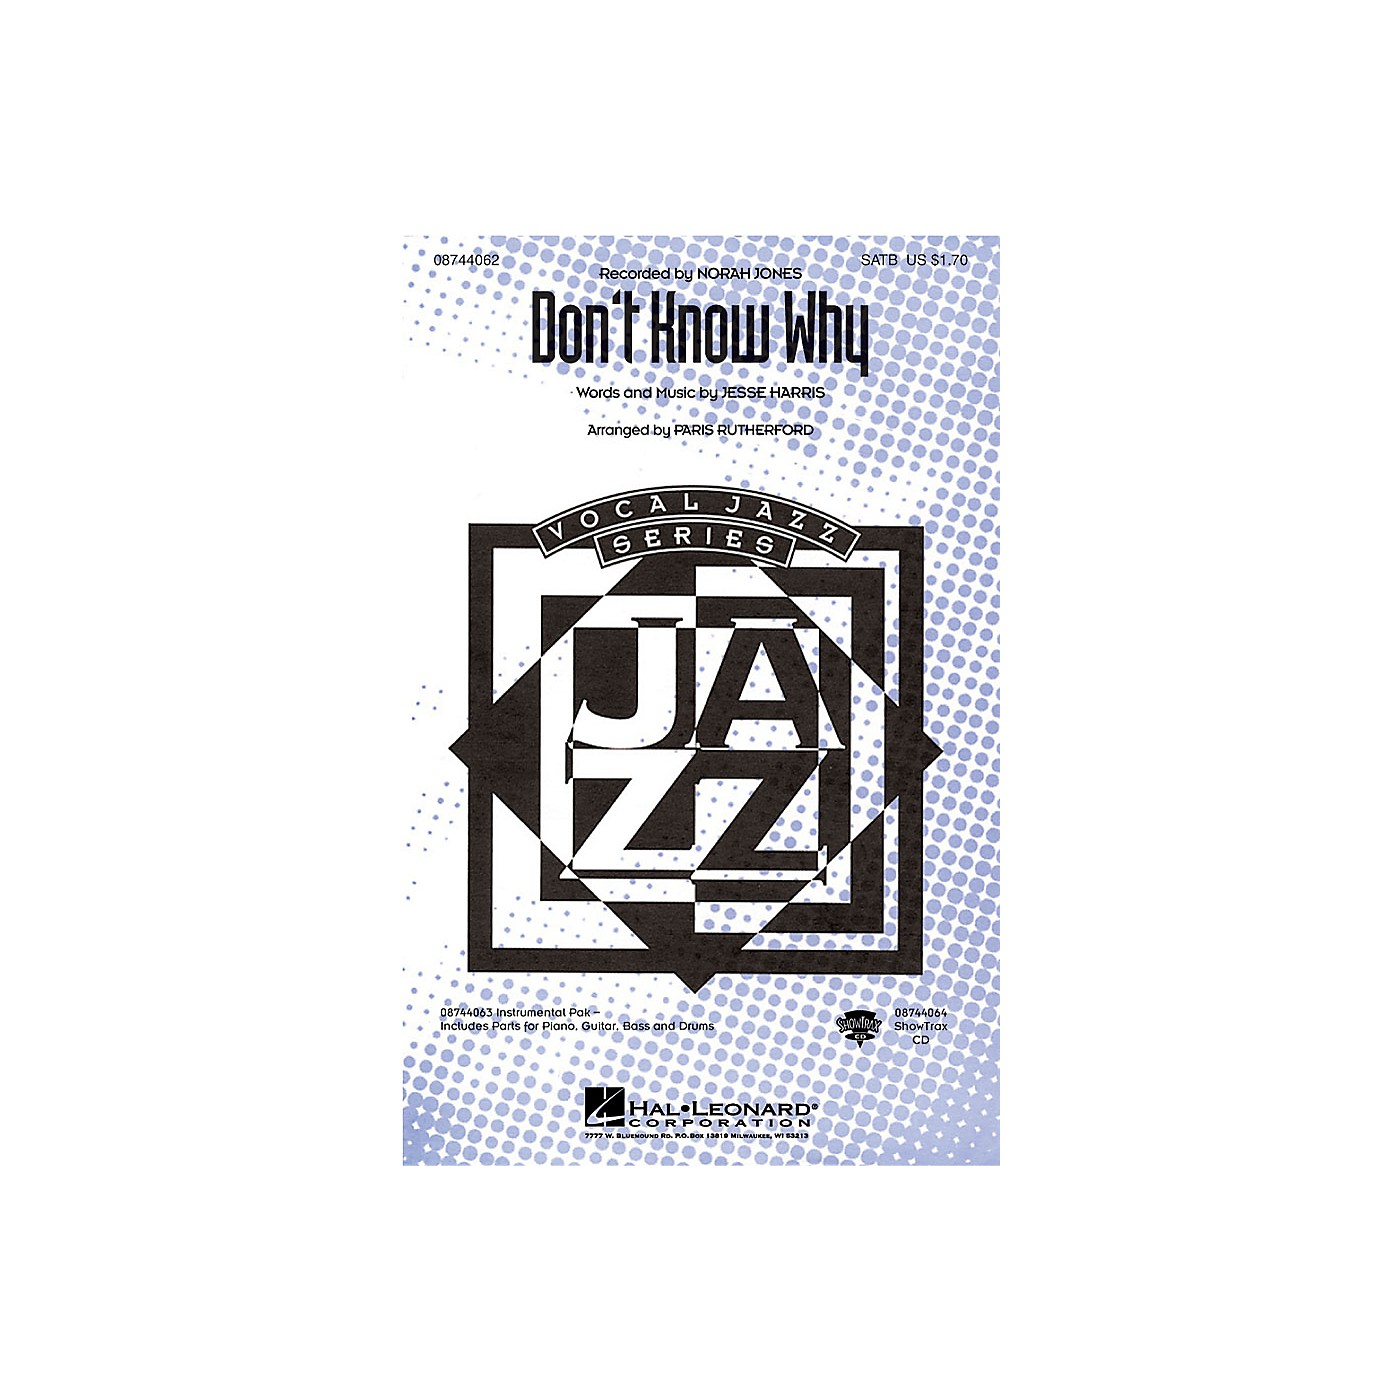 Hal Leonard Don't Know Why SATB by Norah Jones arranged by Paris Rutherford thumbnail